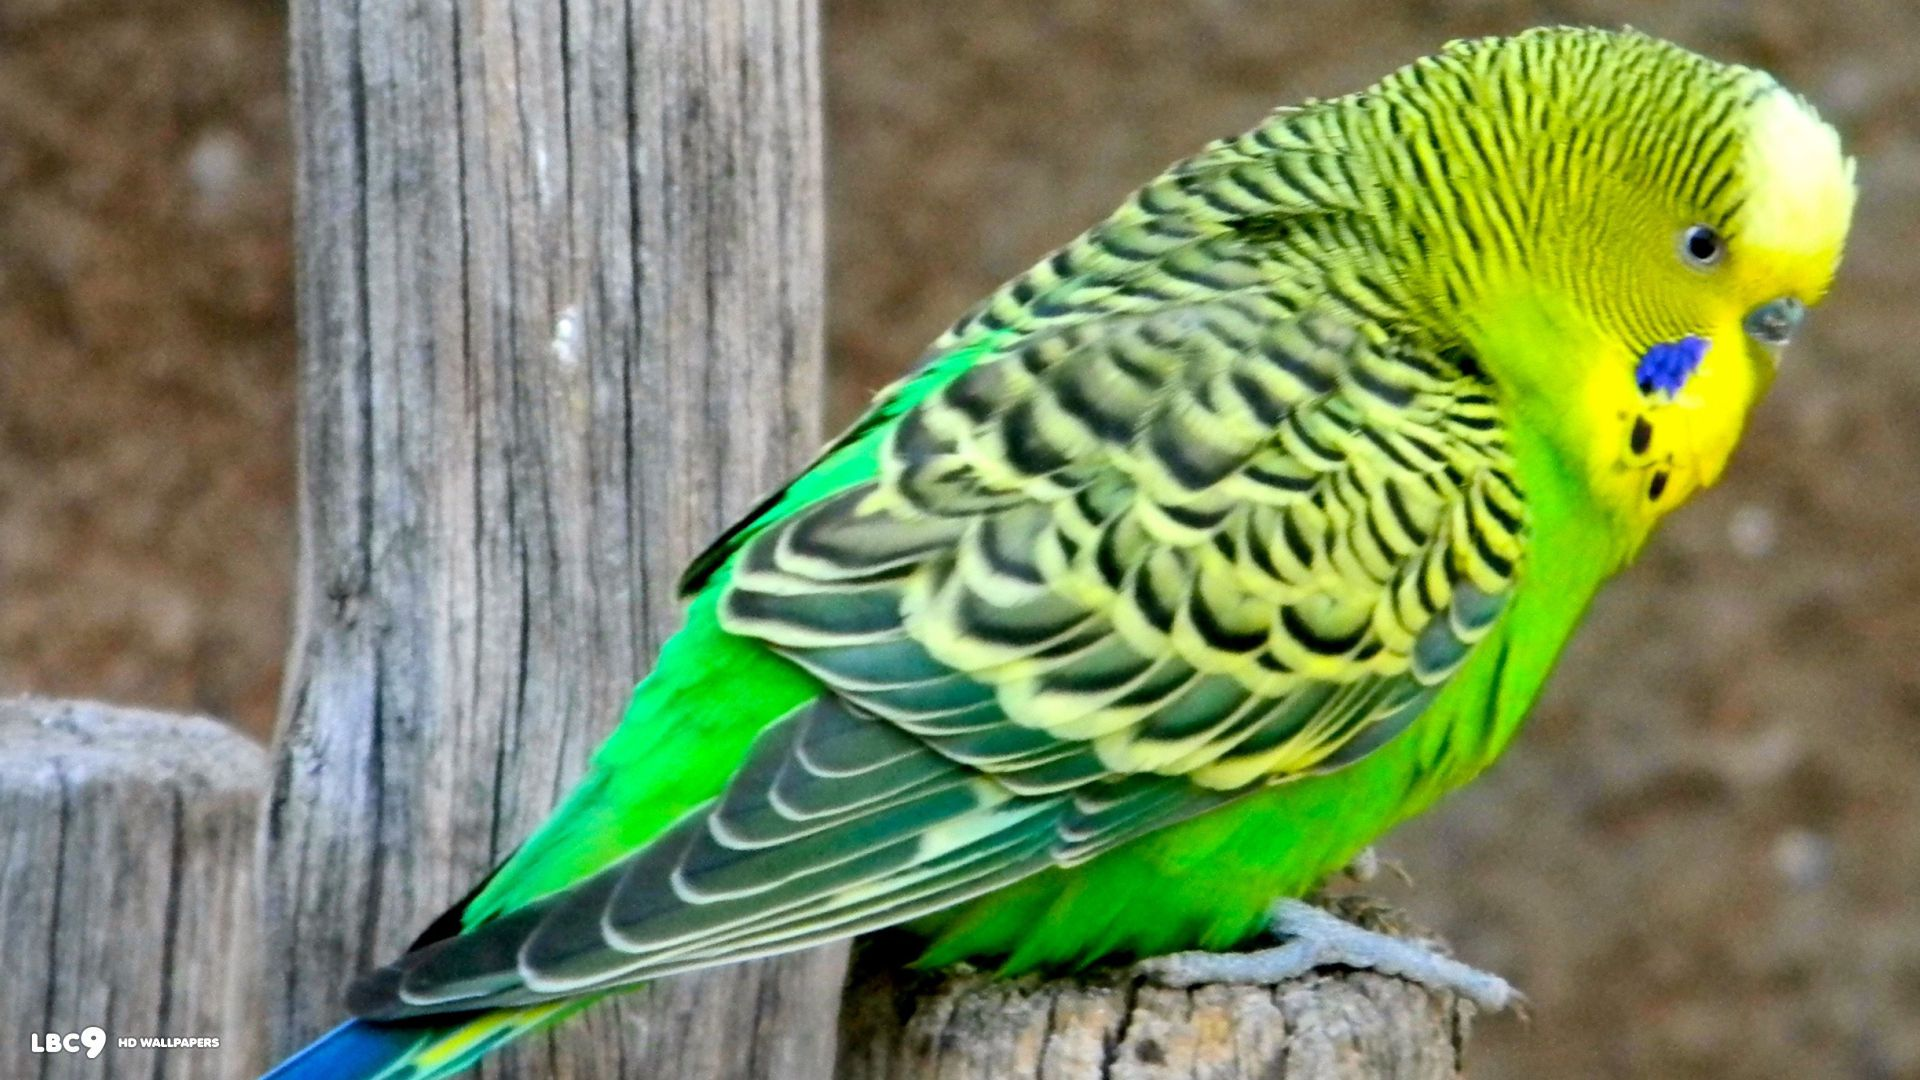 Birds Budgie Tropical Parrot Bird Parakeet Love Wallpapers 1024x768